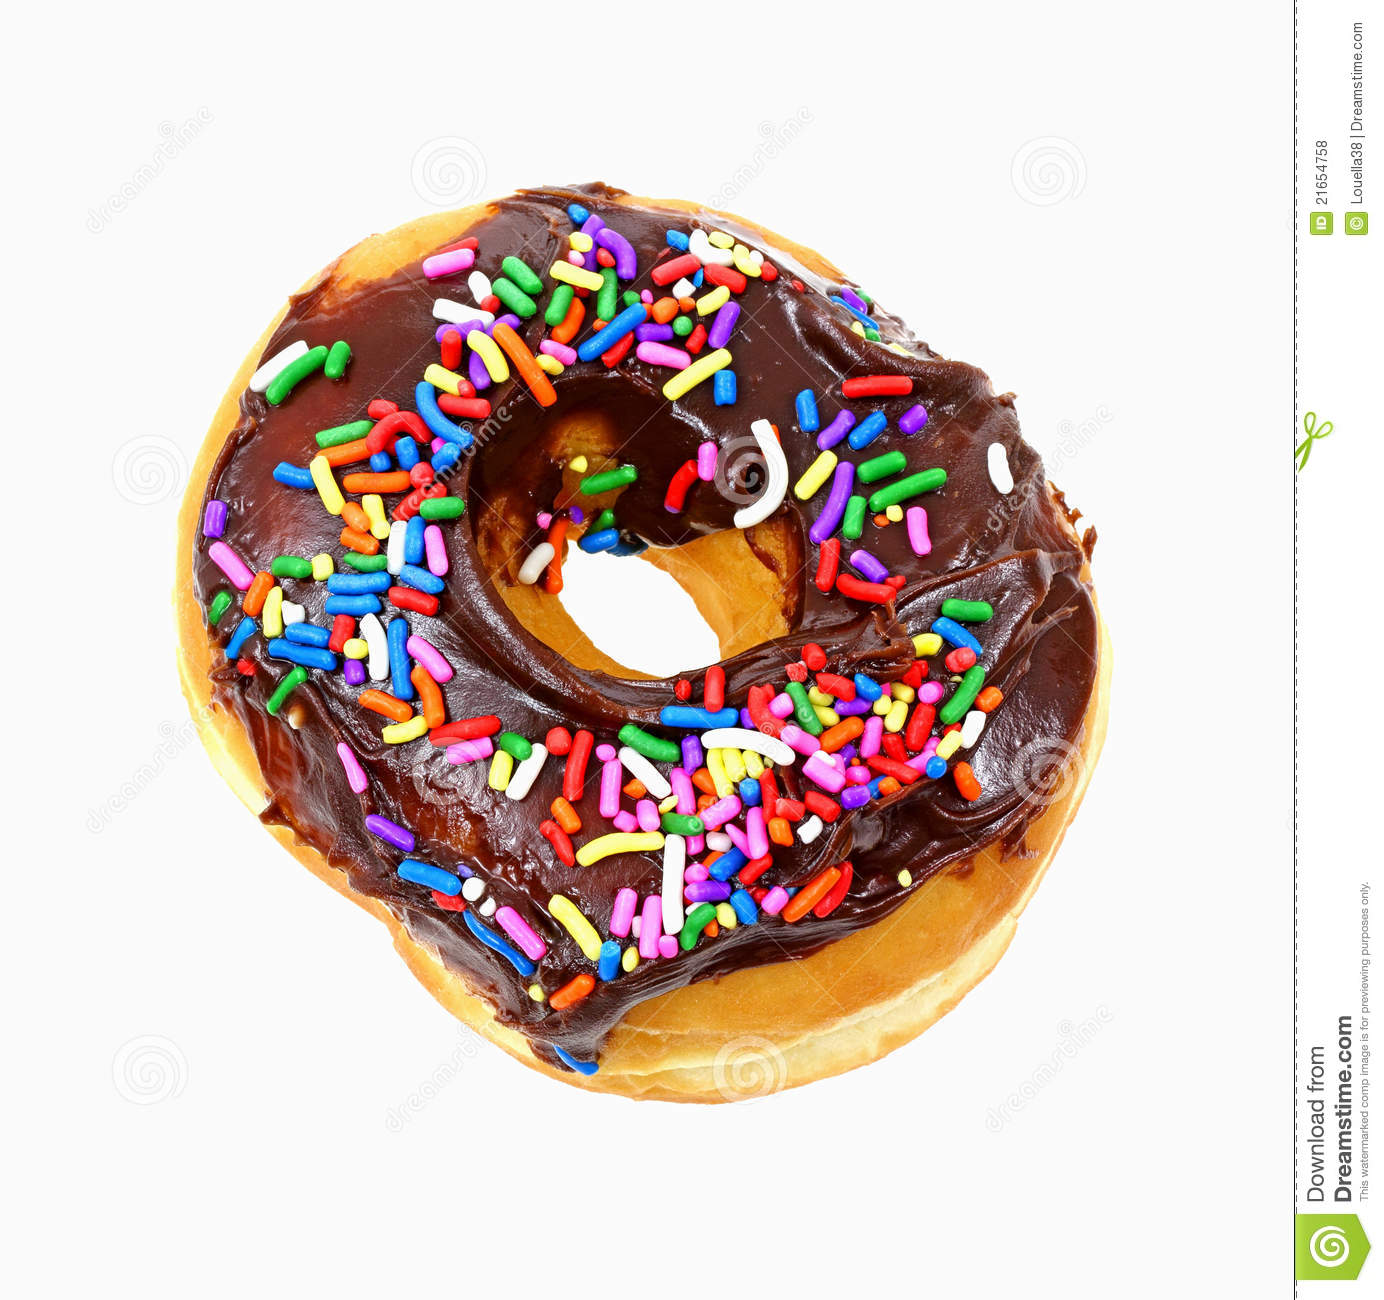 Chocolate Frosted Donut Sprinkles Overhead View Royalty Free Stock ...